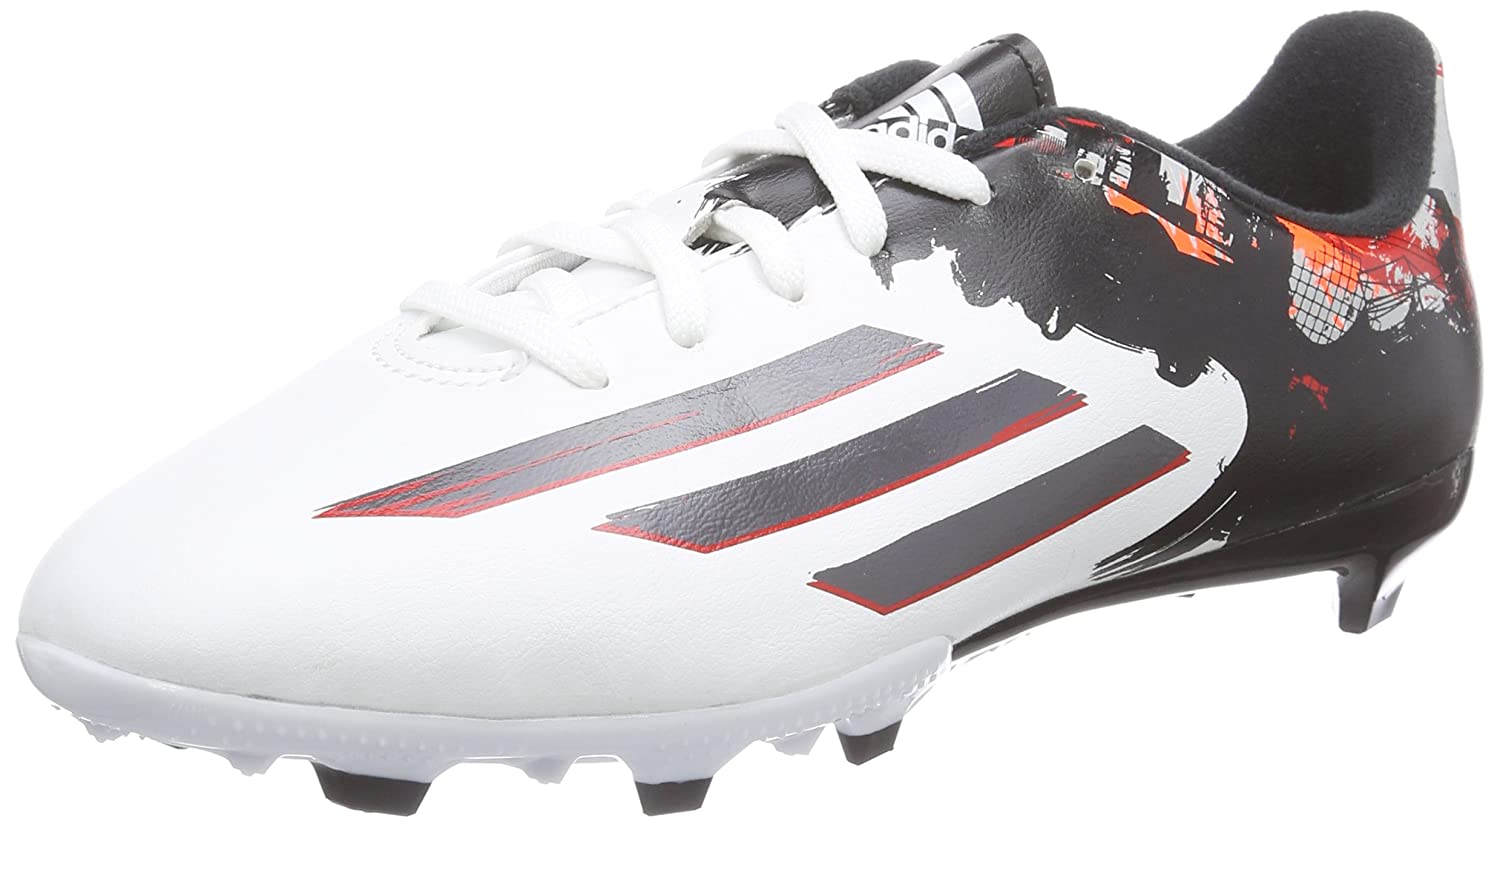 287144996294 adidas Boys' Messi 10.3 FG Football Boots, Weiß (FTWR White/Granite/Scarlet),  12.5k: Amazon.co.uk: Shoes & Bags